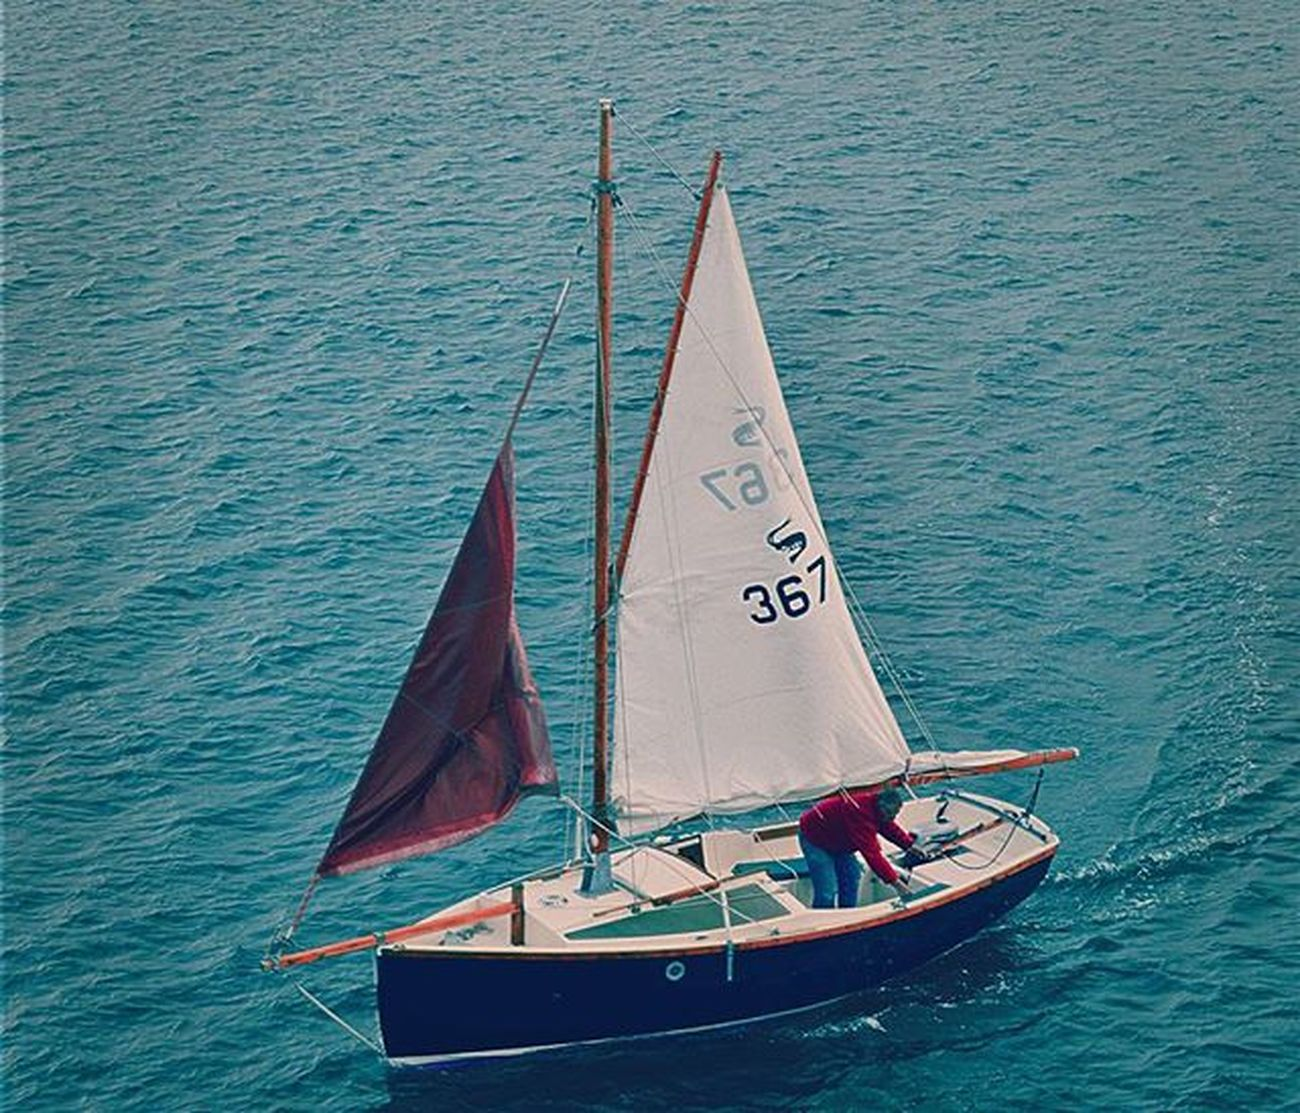 Seaview Sea Destinationdevon Plymouthhoe Plymouthsound Britansoceancity Plymouth Sailing Sailingboat Boats Bluesea Sea Nikond3200photography Thelensebible Daily_photoz Nikon Nikond3200 Lovephotography  Lifethroughalens Lovephotography  Photographylovers Devon Swisbest Southwestisbest Loveplymouth devonlife